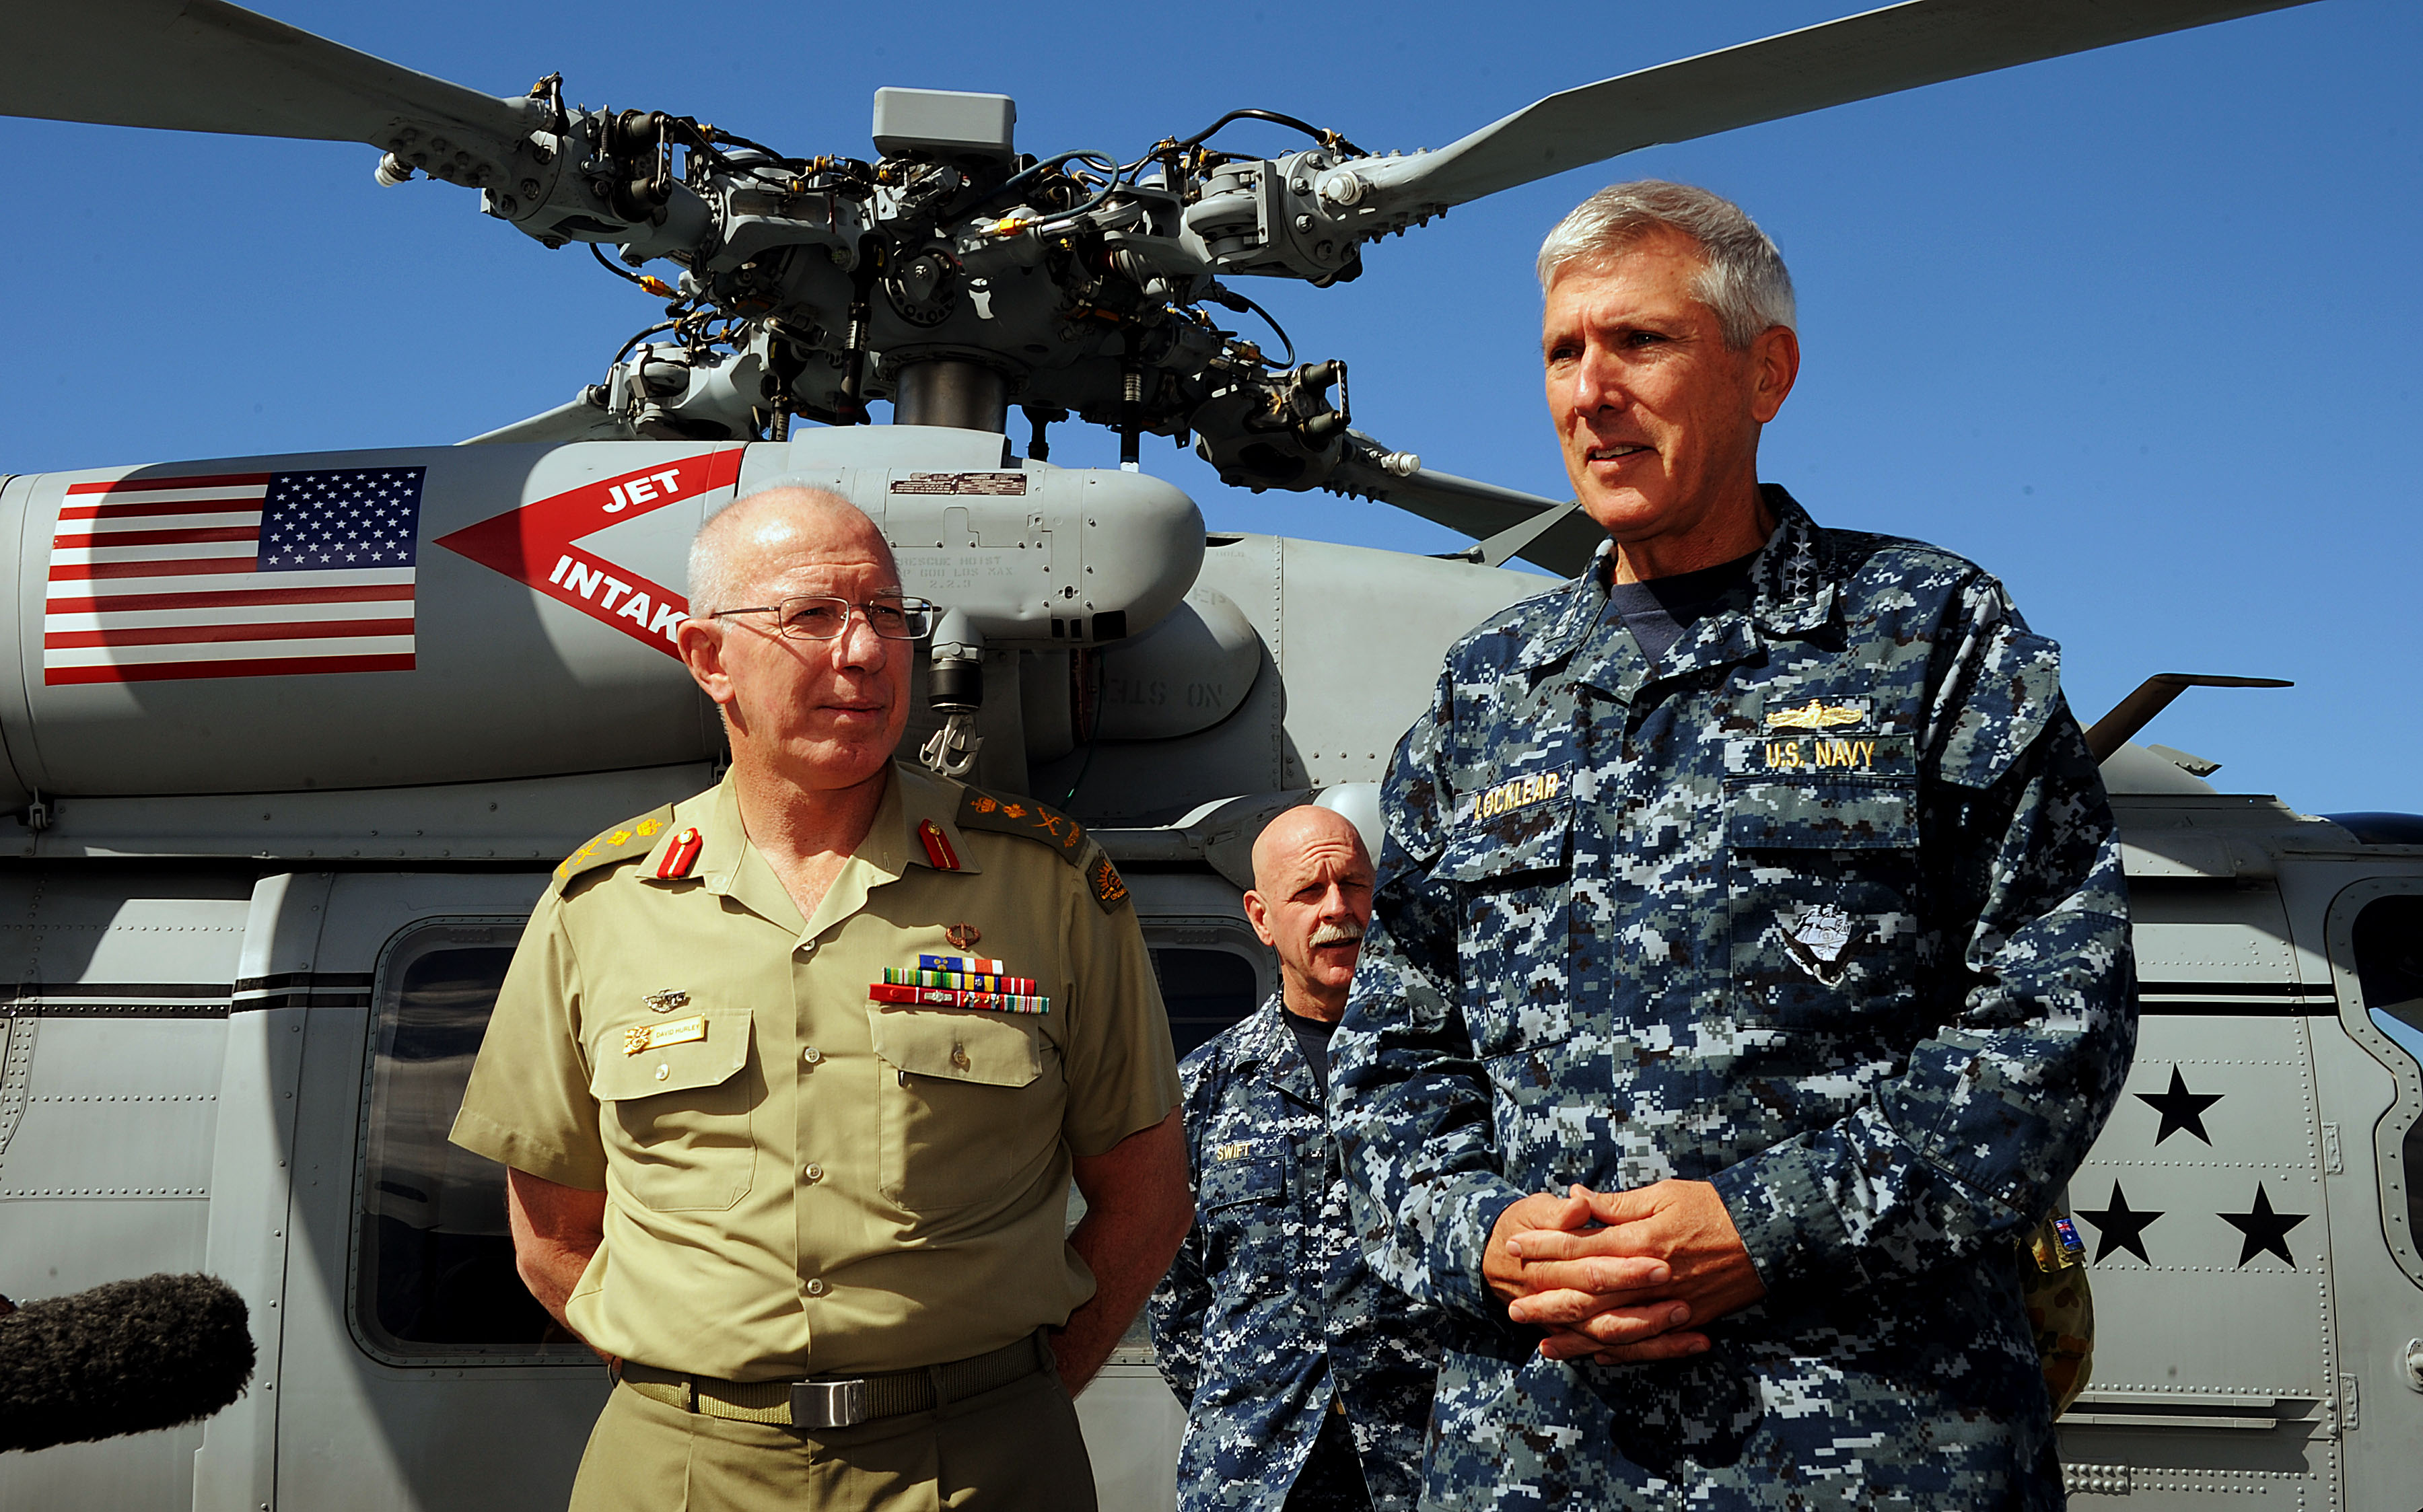 Australian Chief of the Defence Force, General David Hurley, and U.S. Navy Commander, US Pacific Command, Admiral Samuel J. Locklear III, announce the official completion of Exercise Talisman Saber 2013 during a media conference on board USS Blue Ridge in Cairns, Queensland.